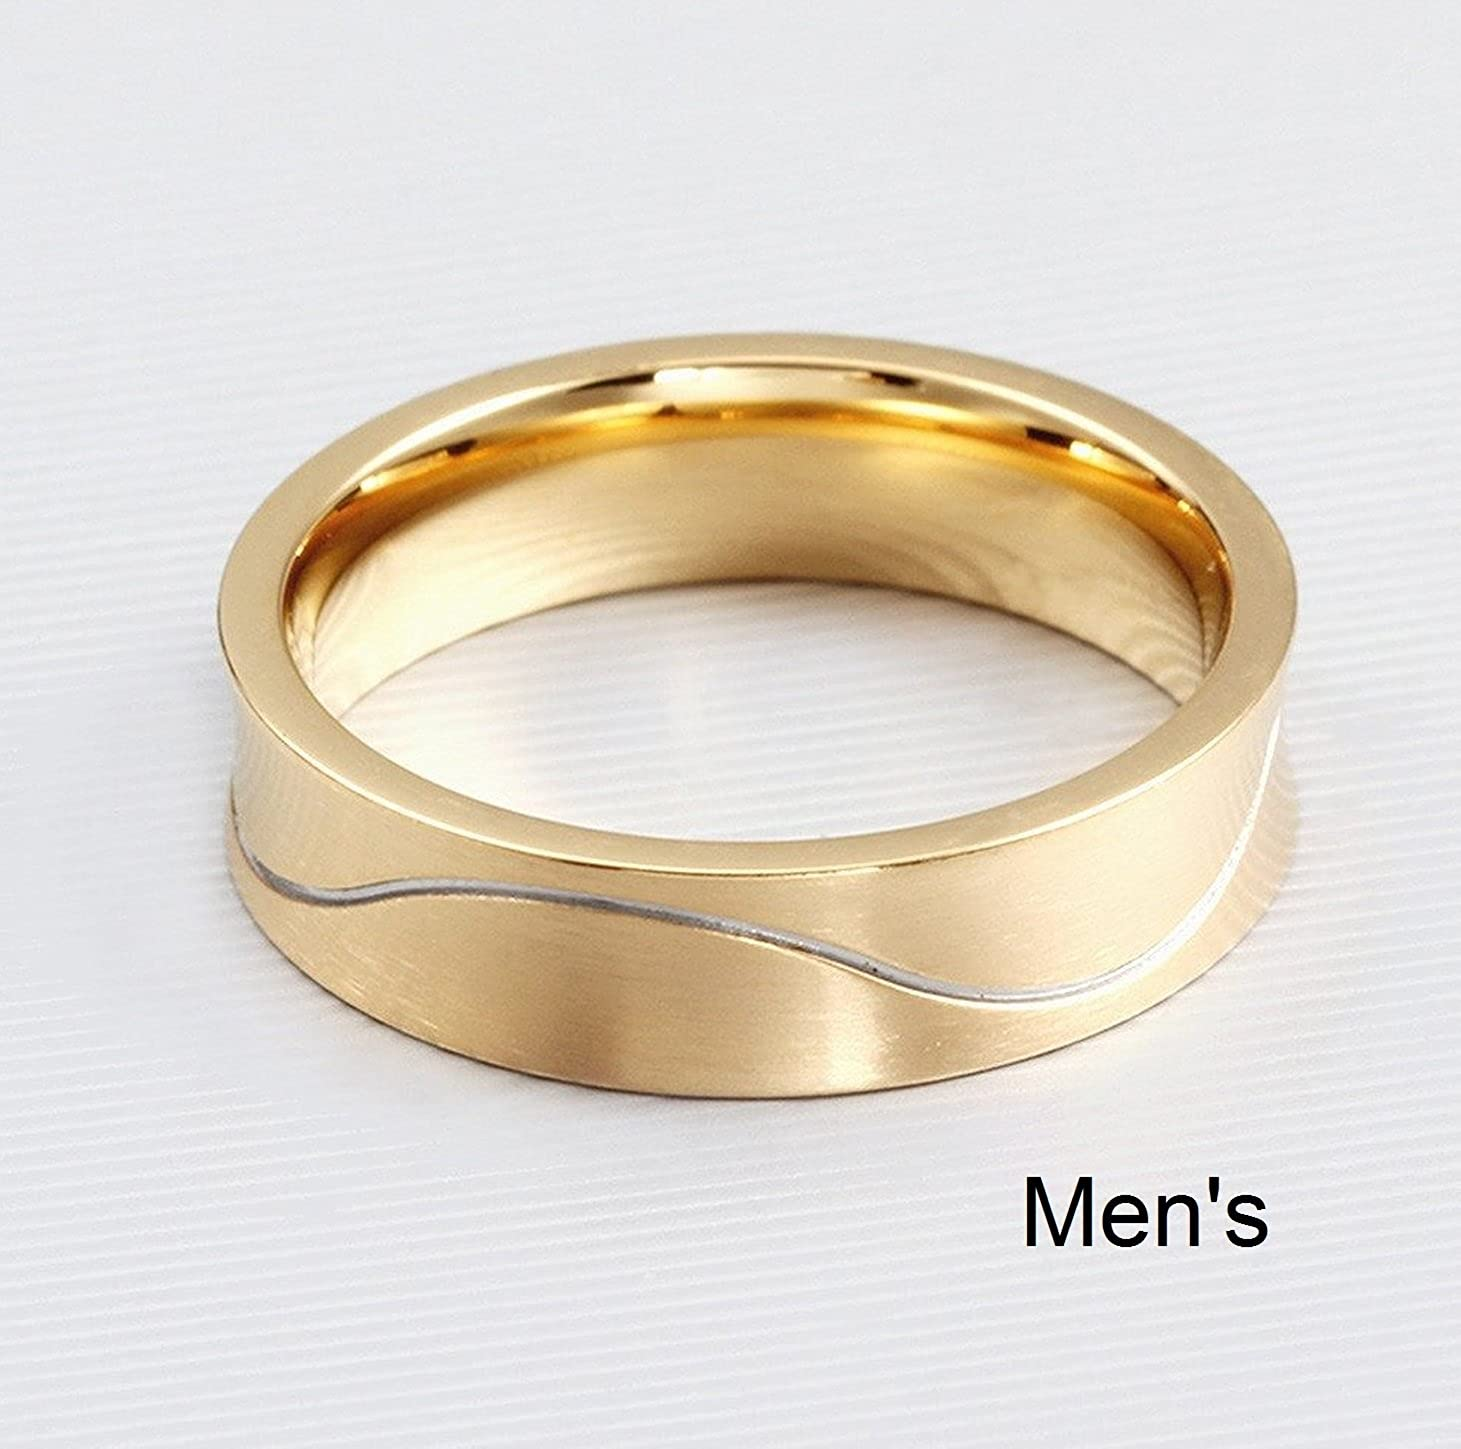 Titanium Stainless Steel Cubic Zirconia Wedding Band Set Engagement Promise Anniversary Couple Ring